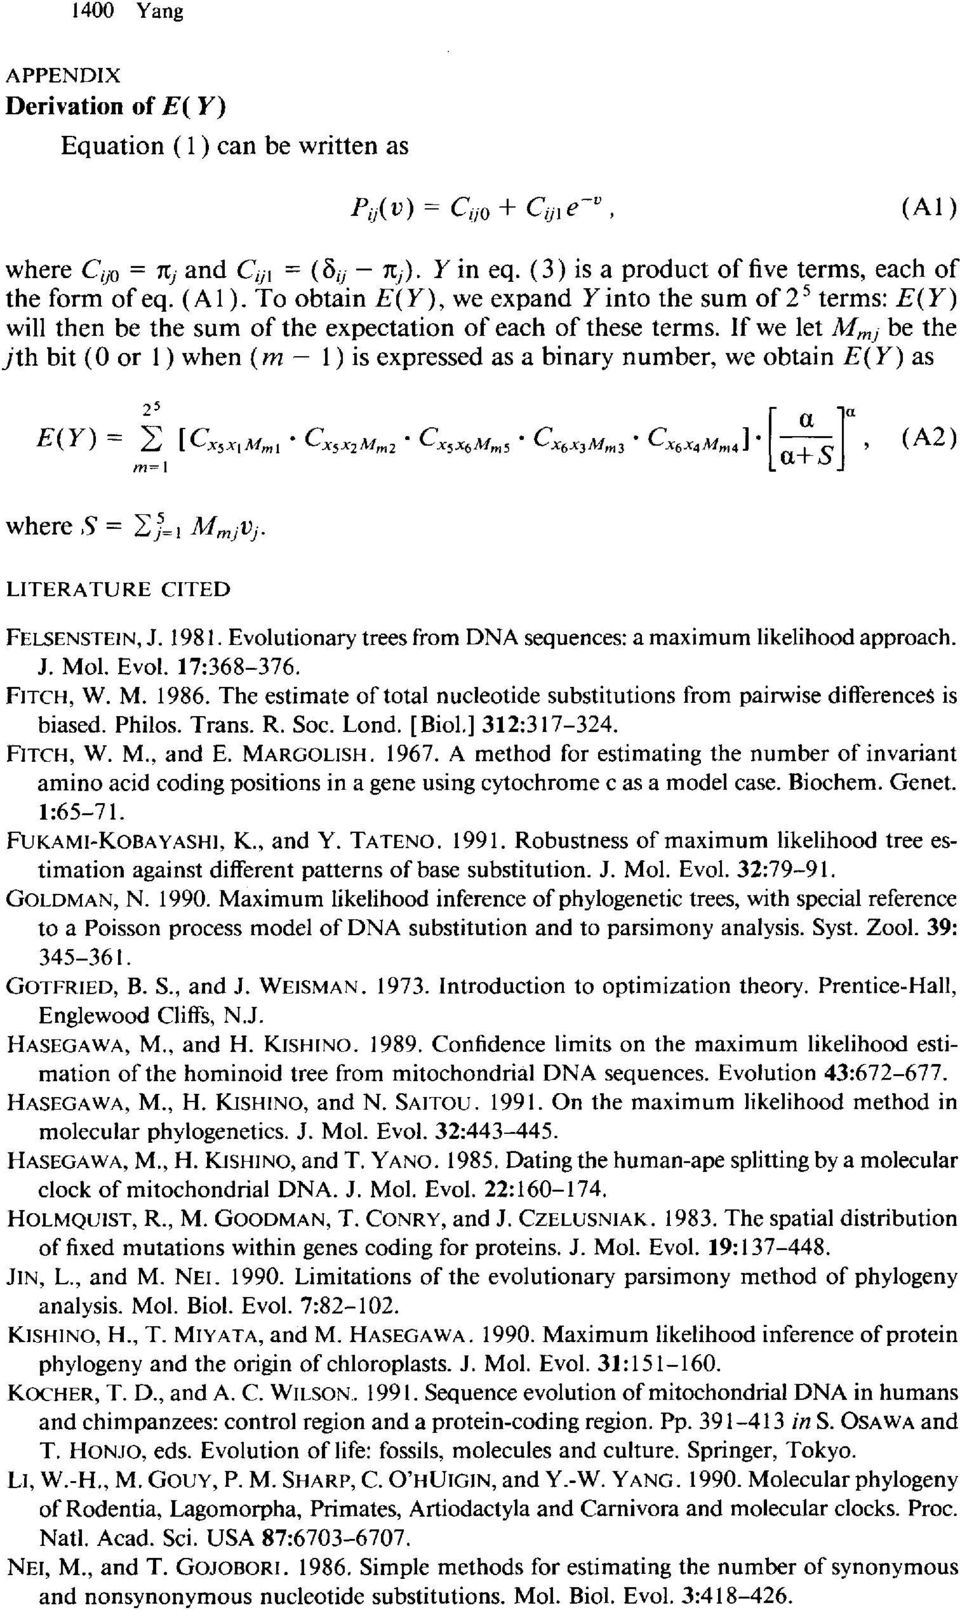 If we let Mmj be the jth bit (0 or 1) when (m - 1) is expressed as a binary number, we obtain E(Y) as where,y = C, =, Mm,Vj. LITERATURE CITED FELSENSTEIN, J. 1981.